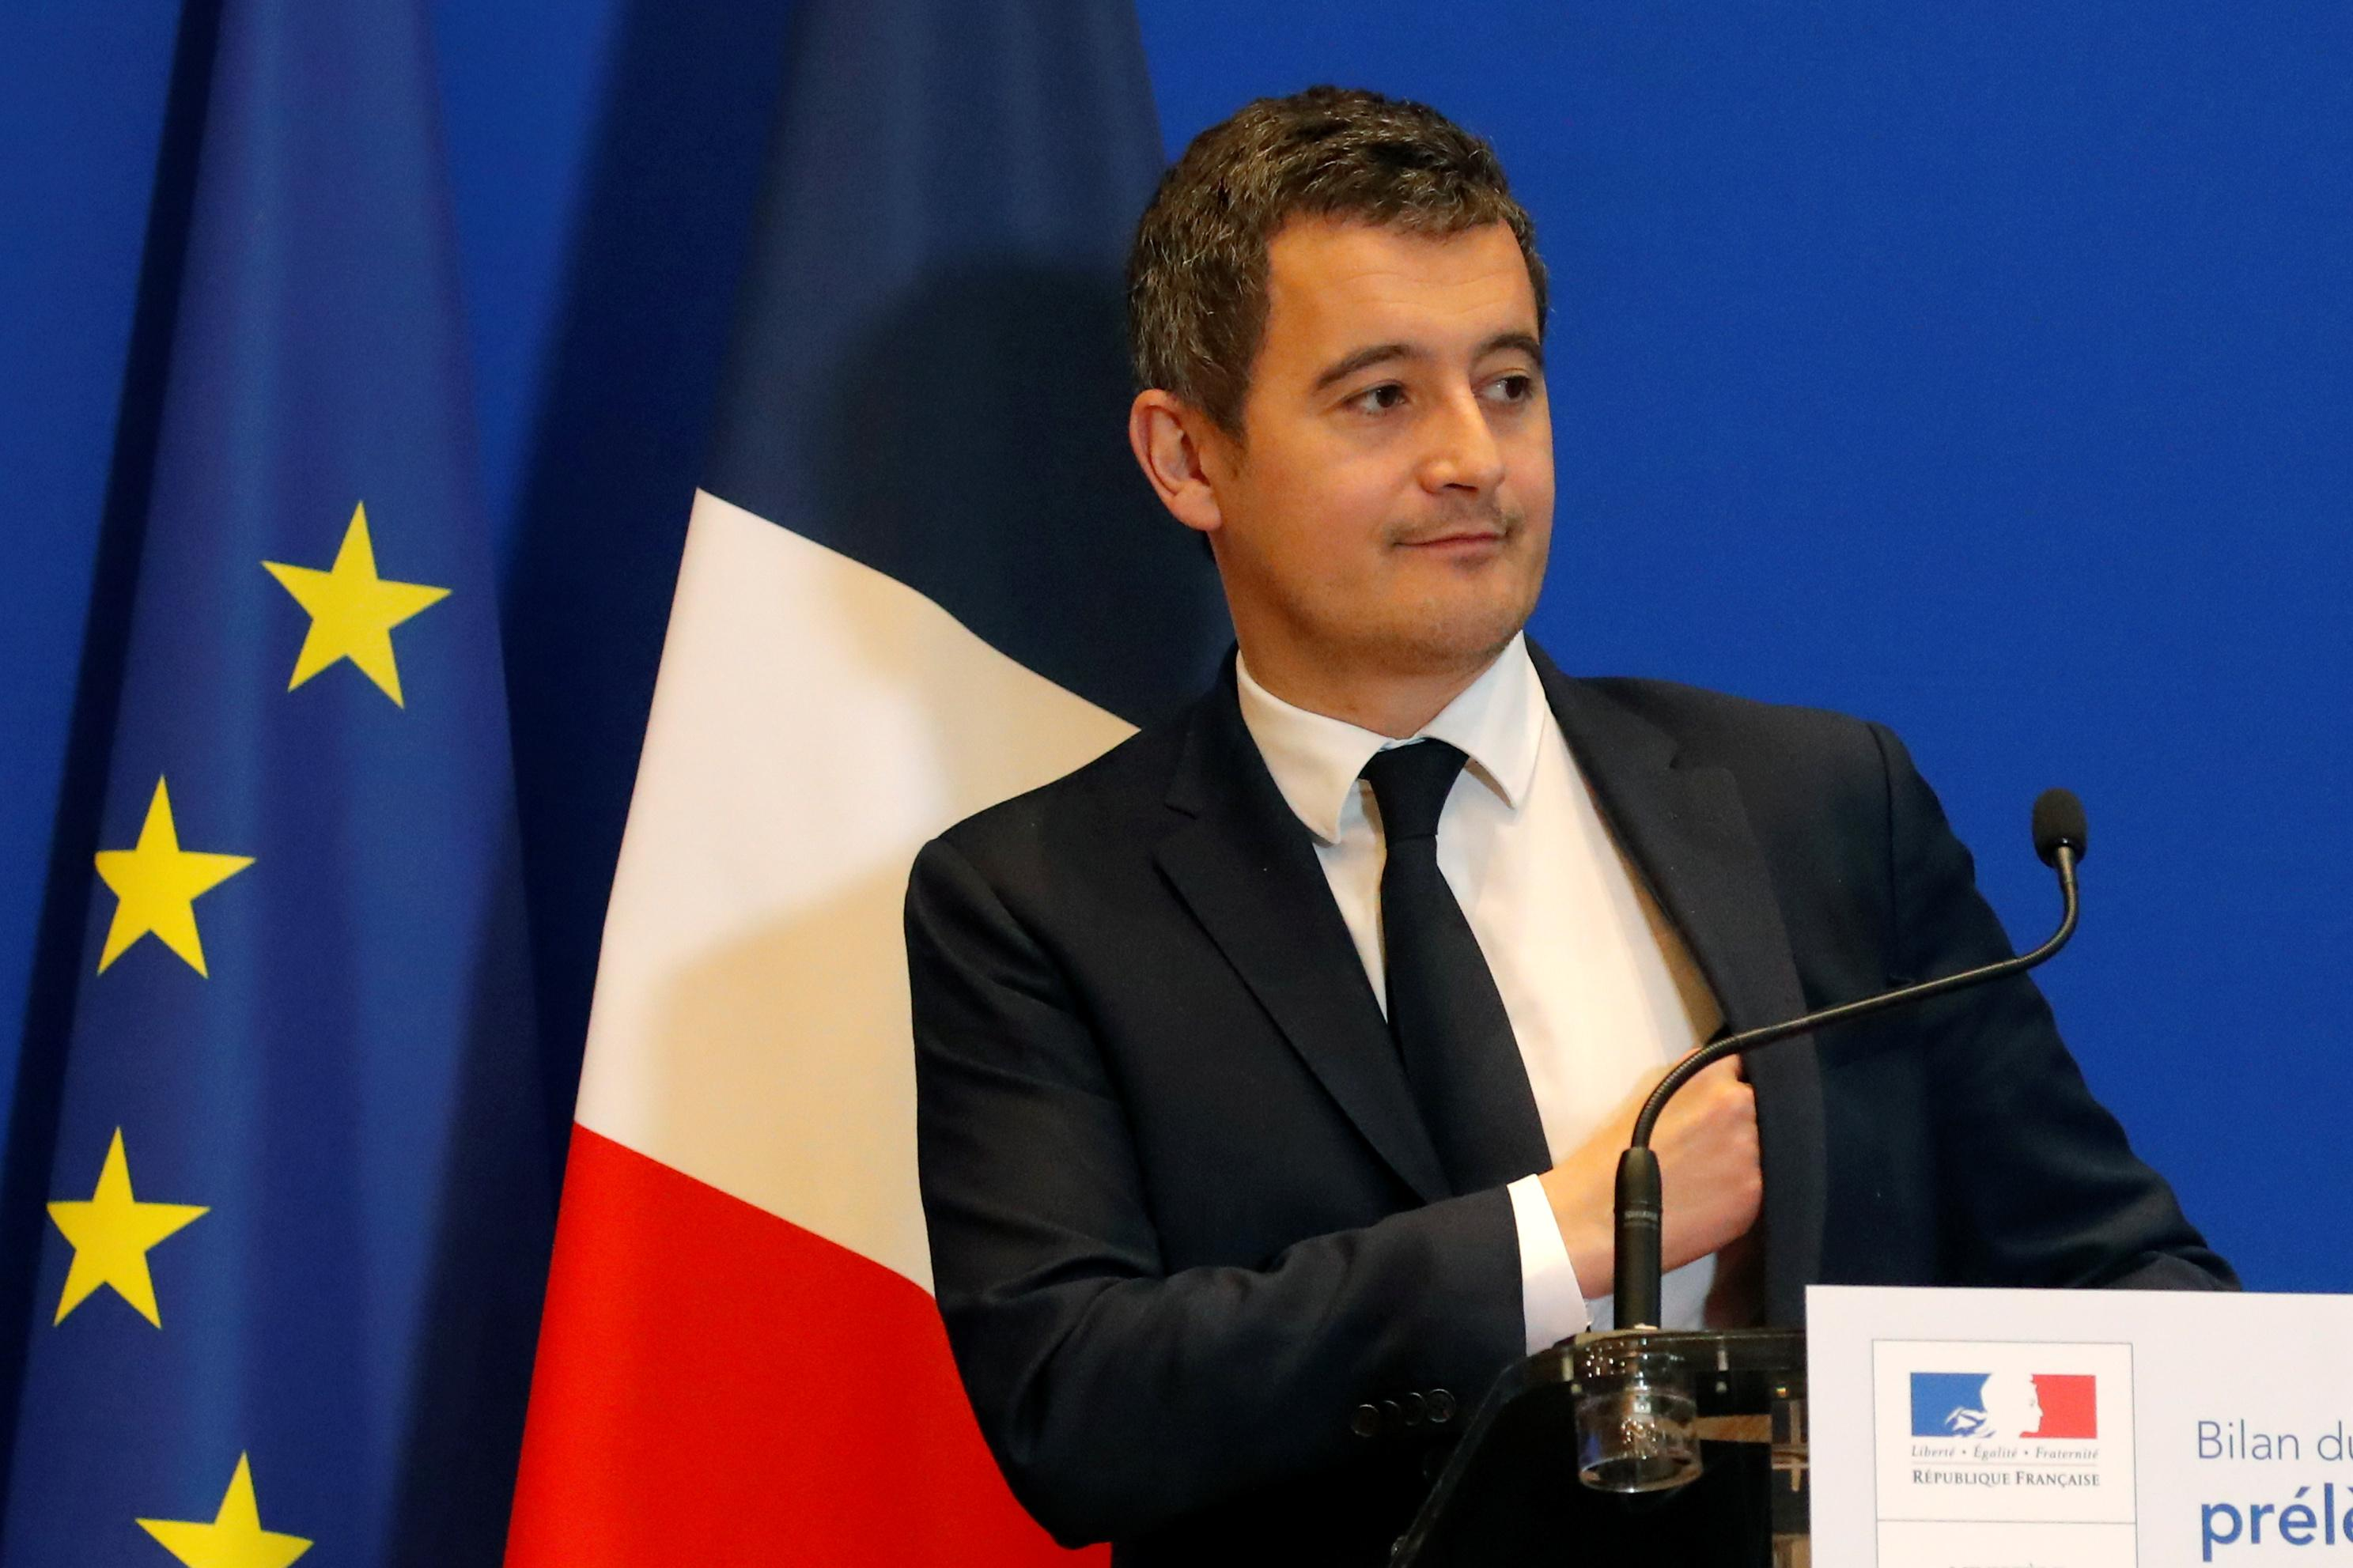 France plans to scrap 1 billion euros of tax breaks for companies